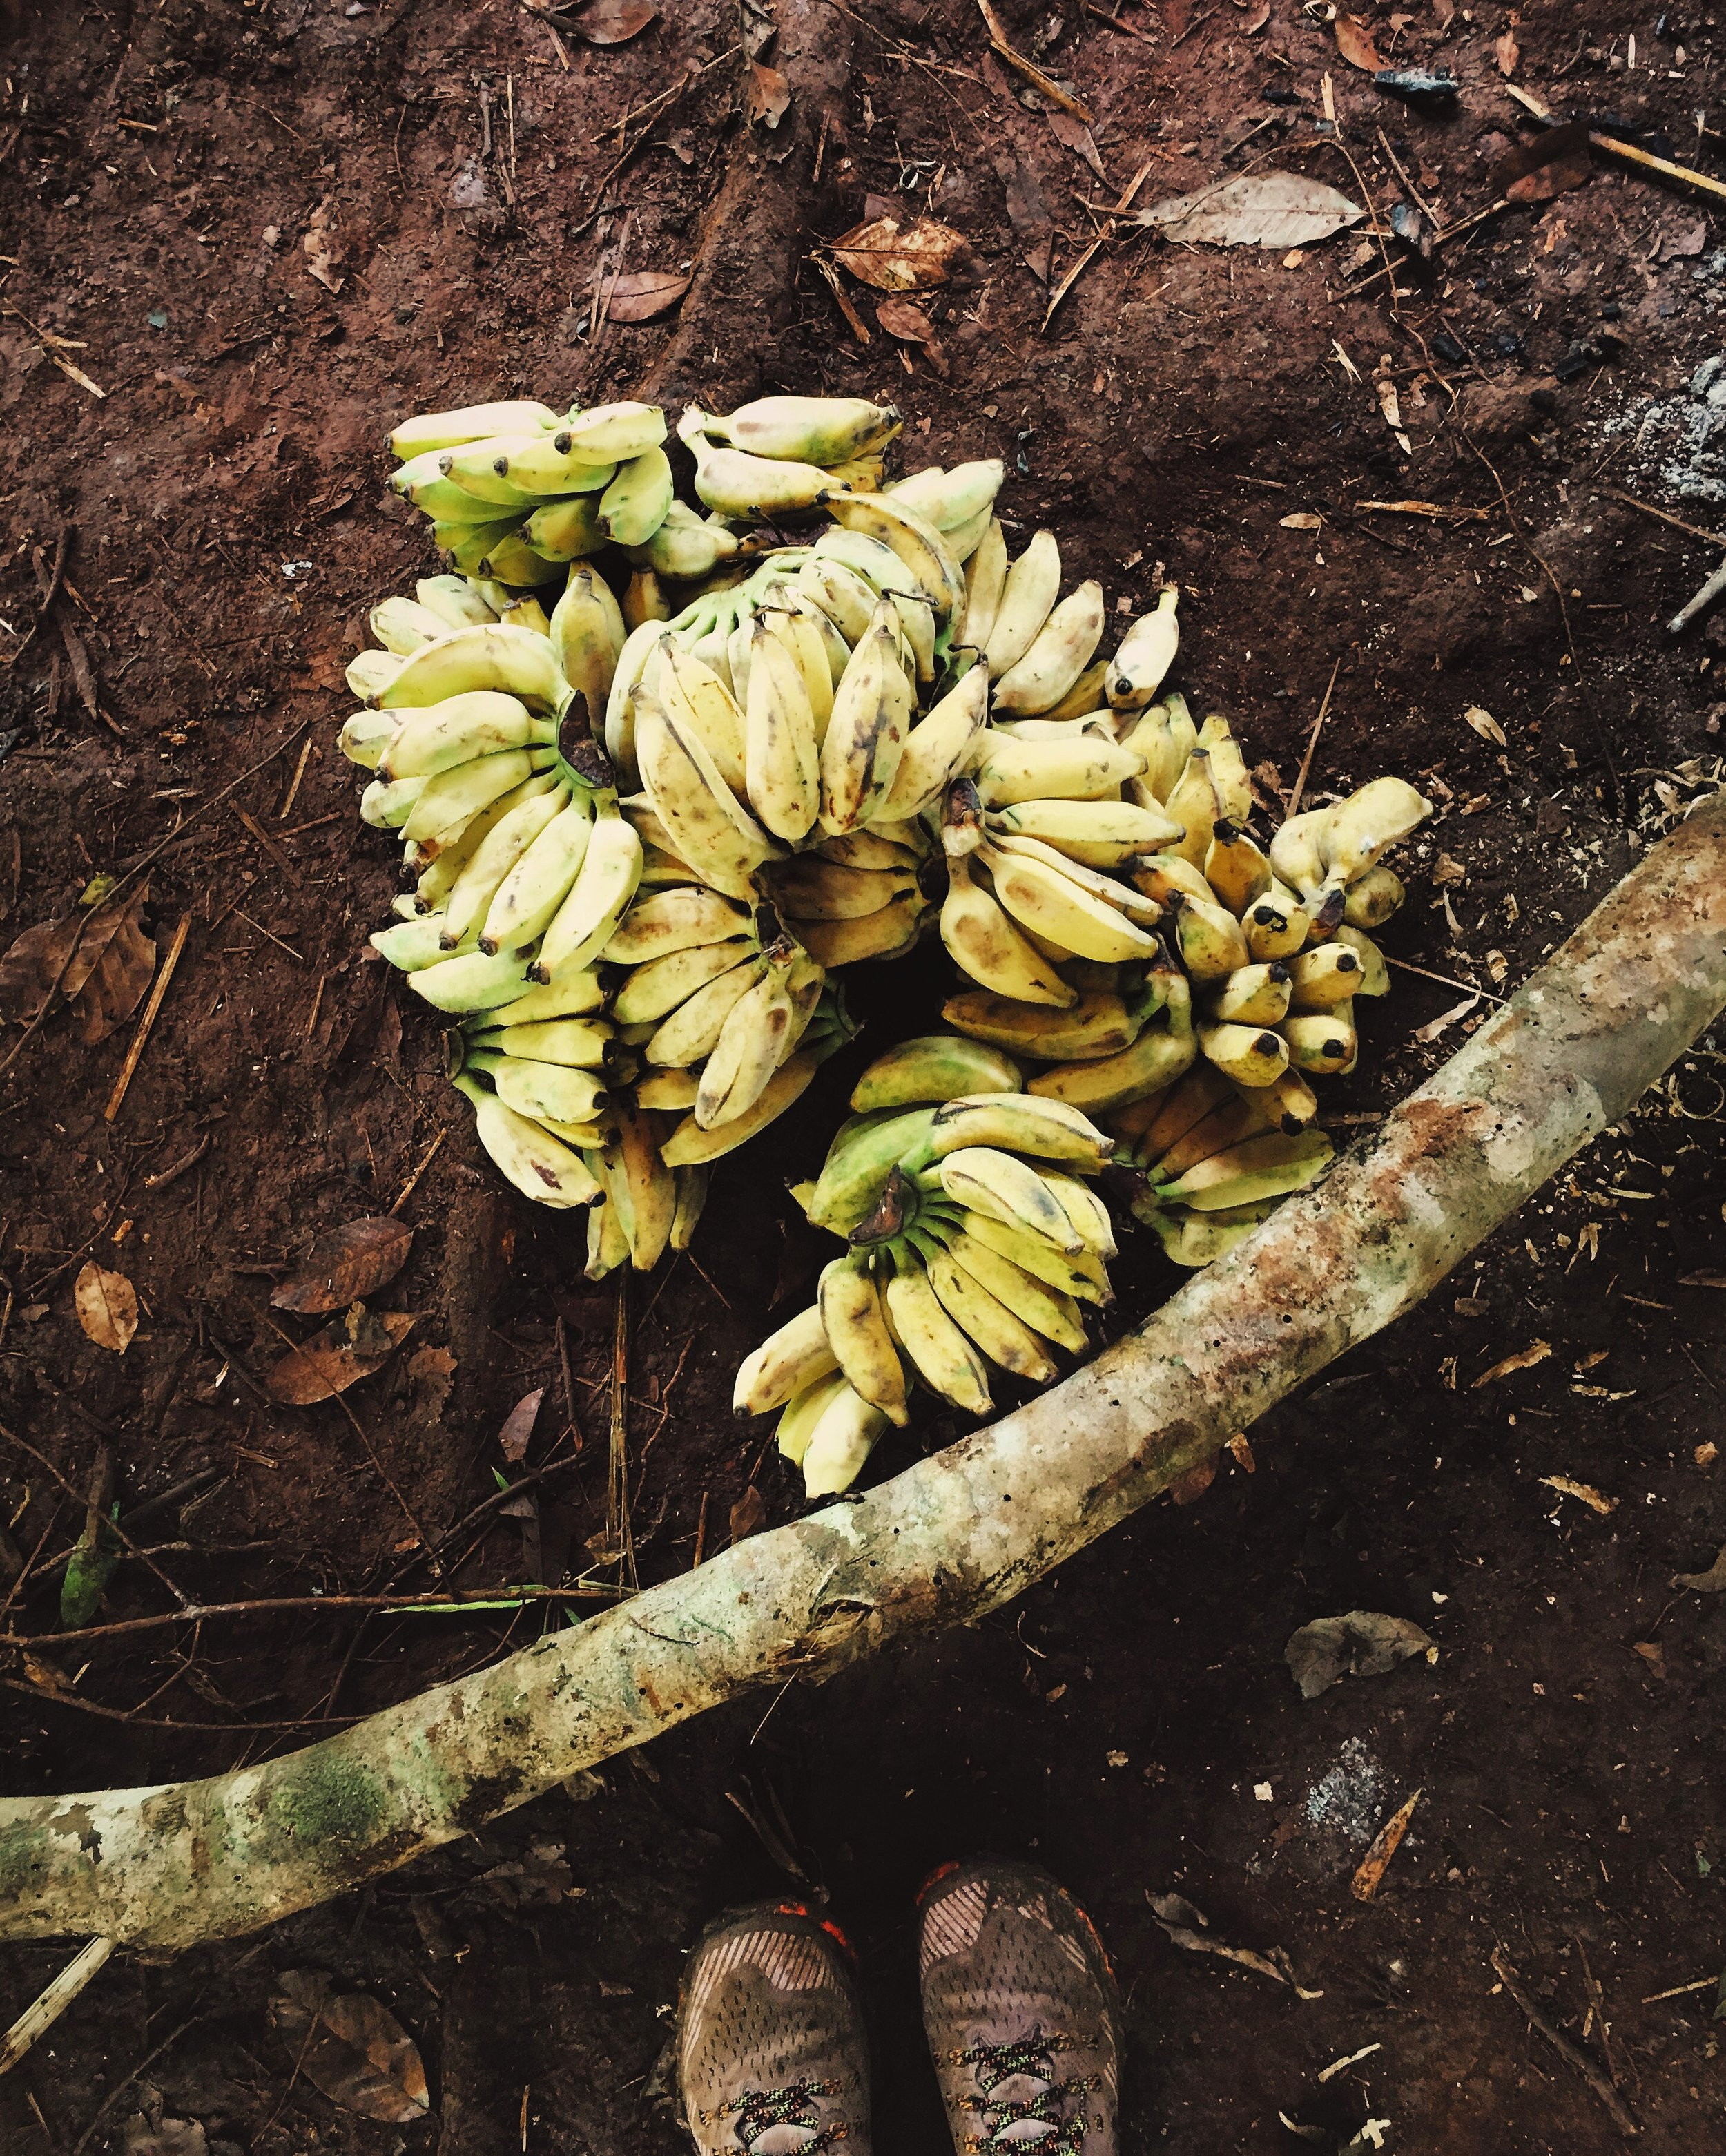 Bananas for days! (For elephants, this is only 10 minutes of food!)